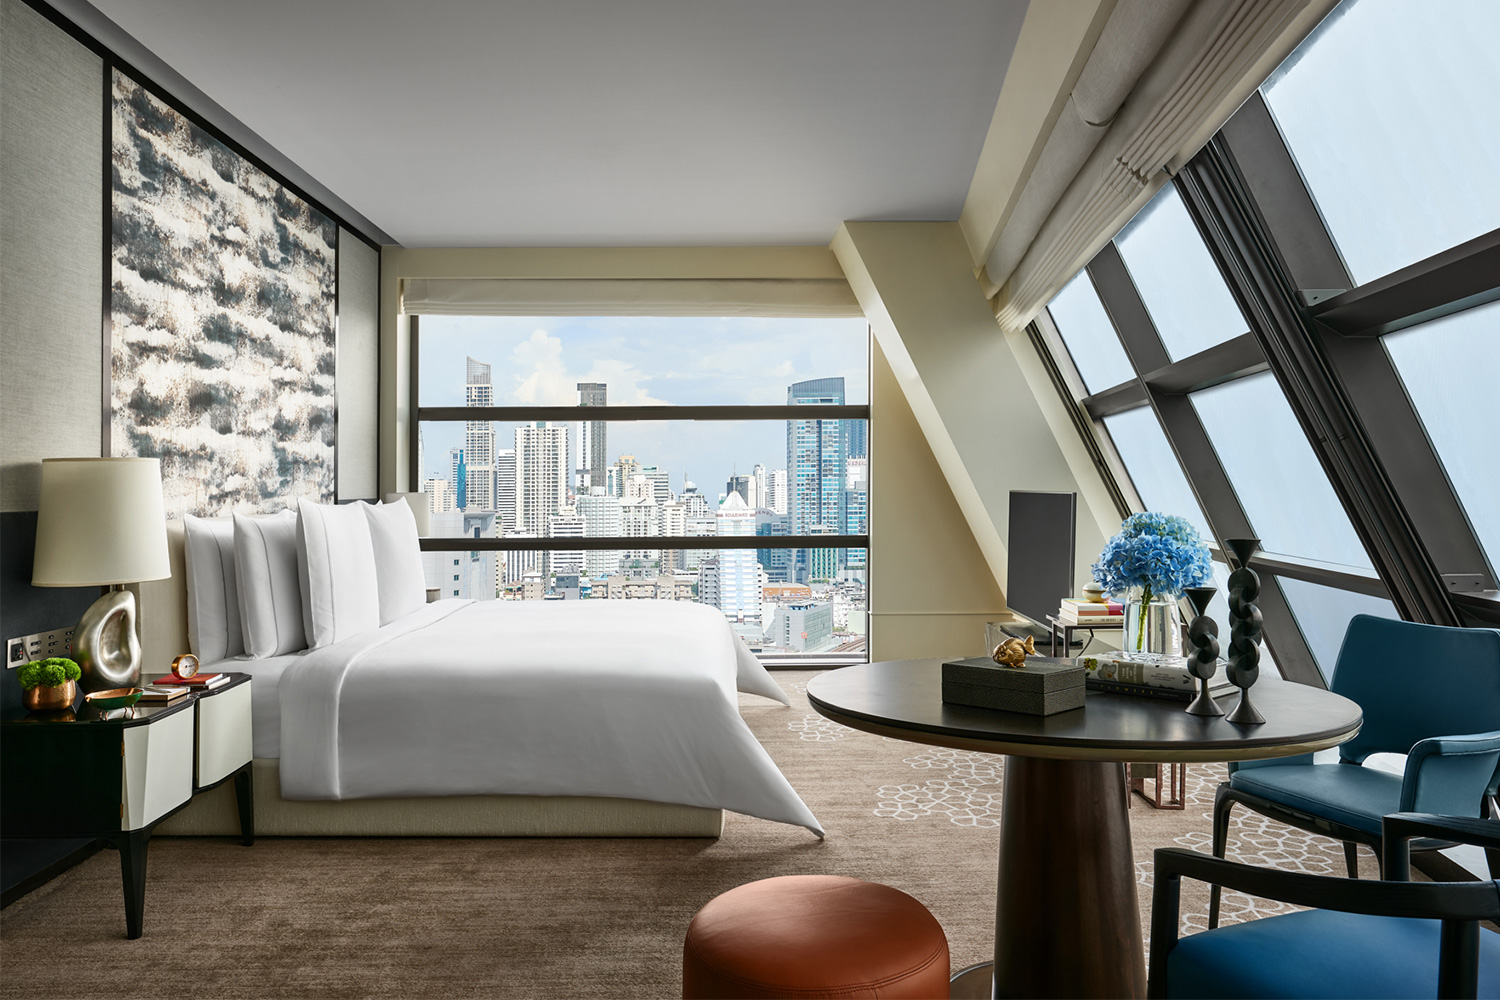 ROSEWOOD BANGKOK UNVEILS NEW STUDIOS, SIGNATURE SUITES  AND LUXURY, RESIDENTIAL-STYLE HOTEL HOUSES